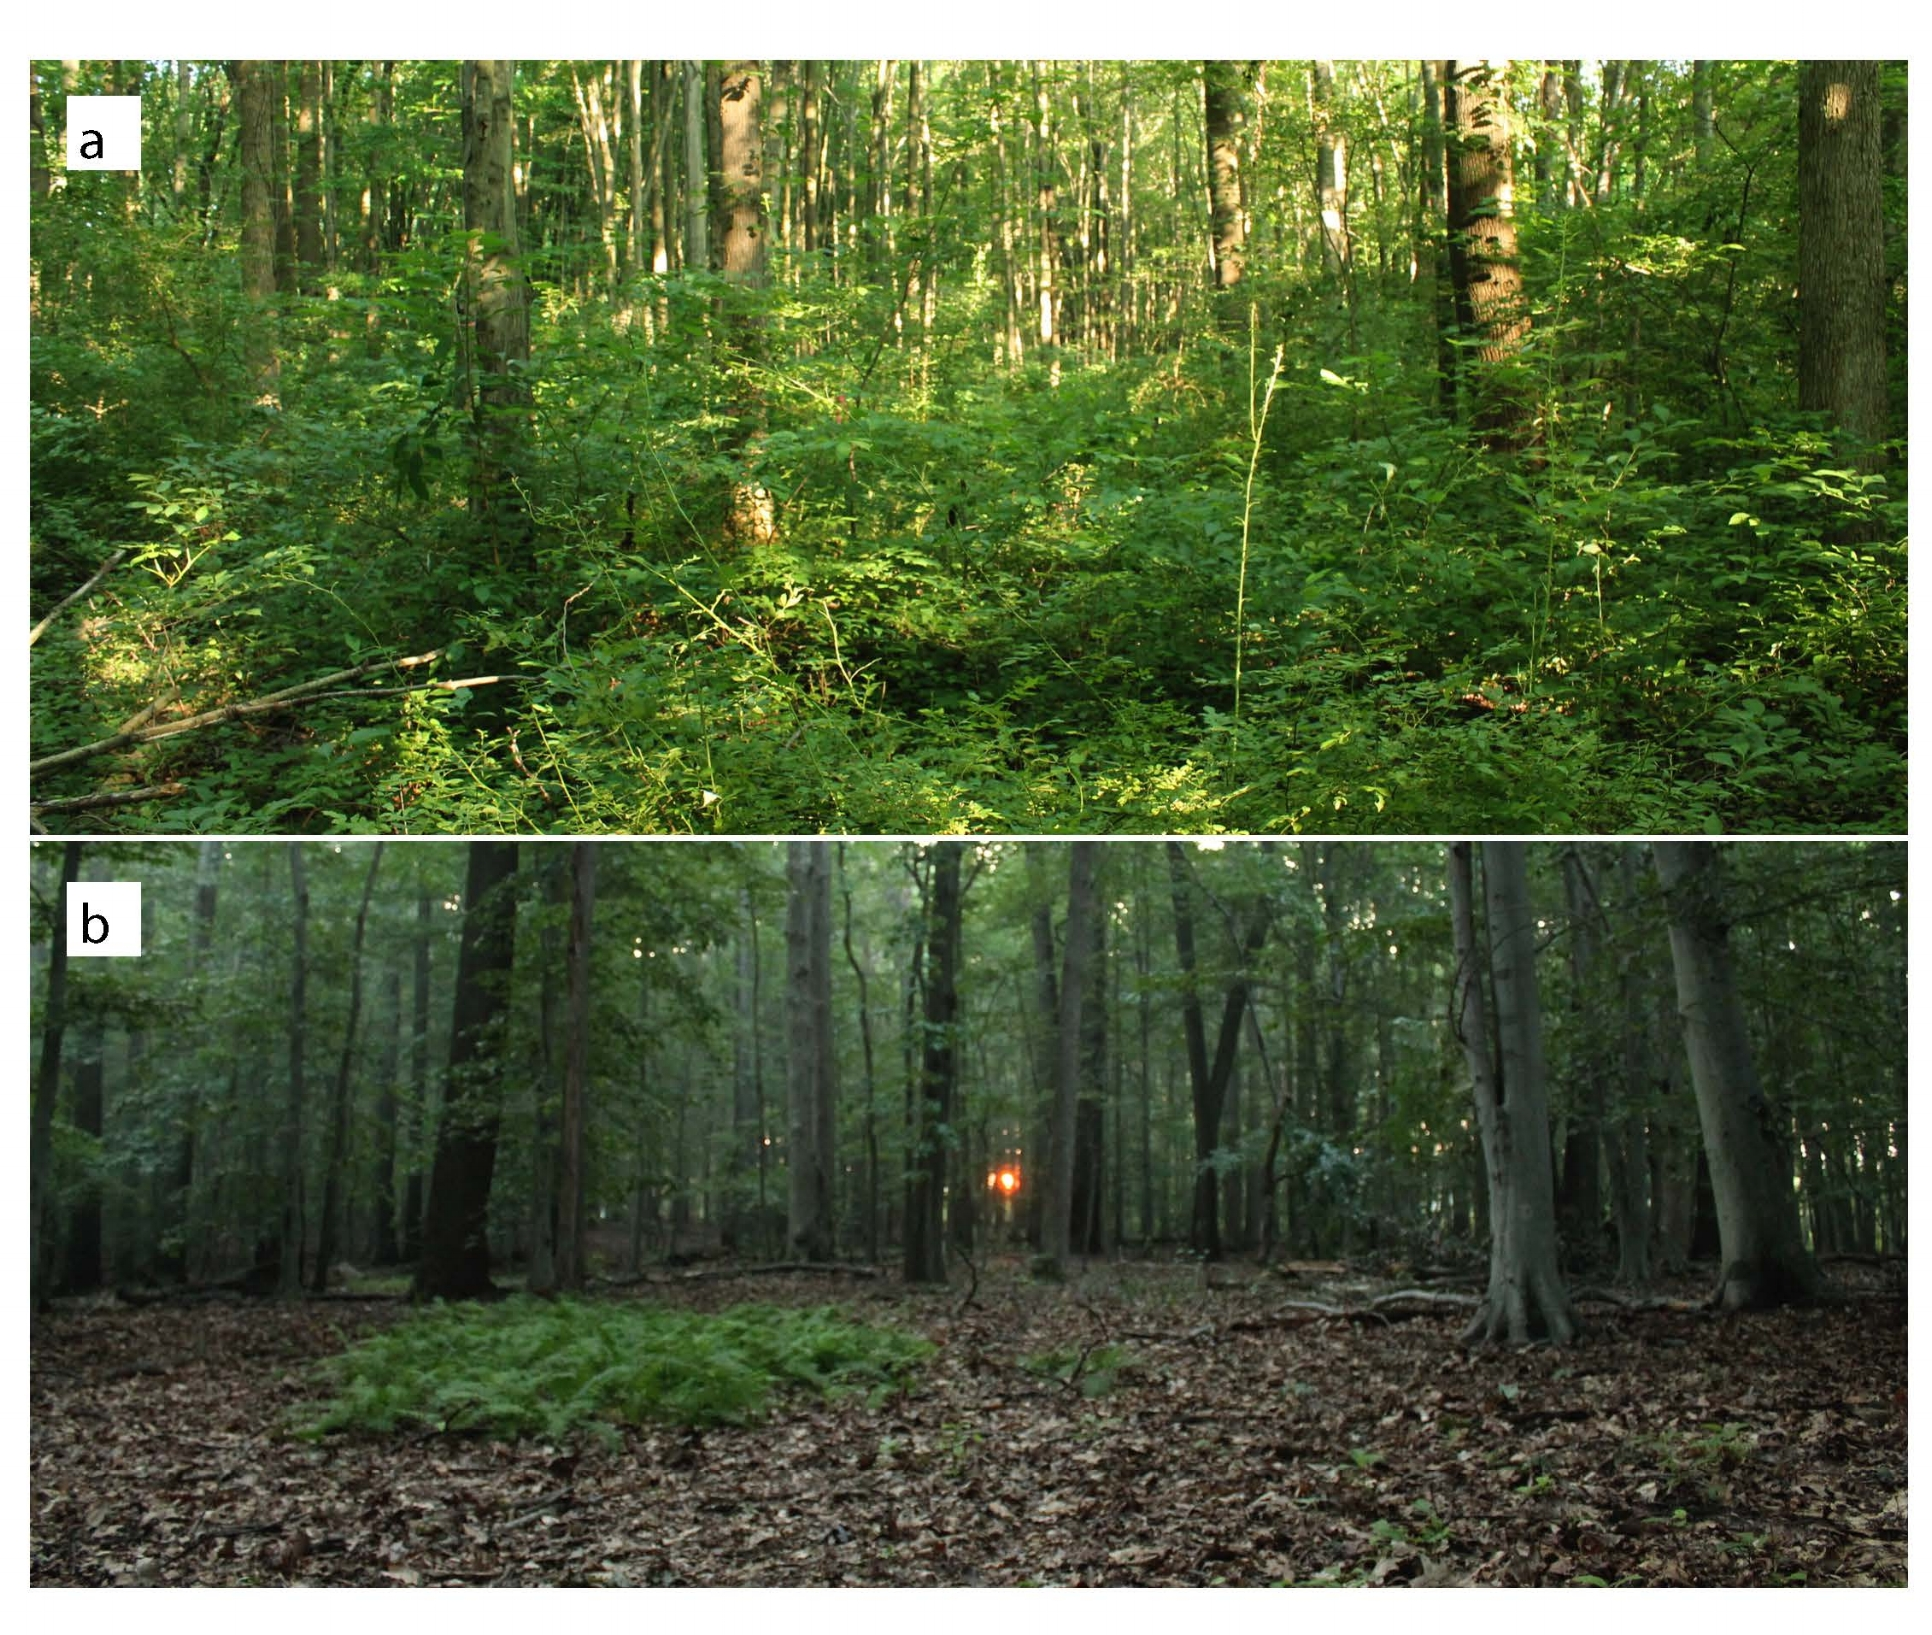 (a) Forest with  R. multiflora  invasion (b) Forest without  R. multiflora  invasion